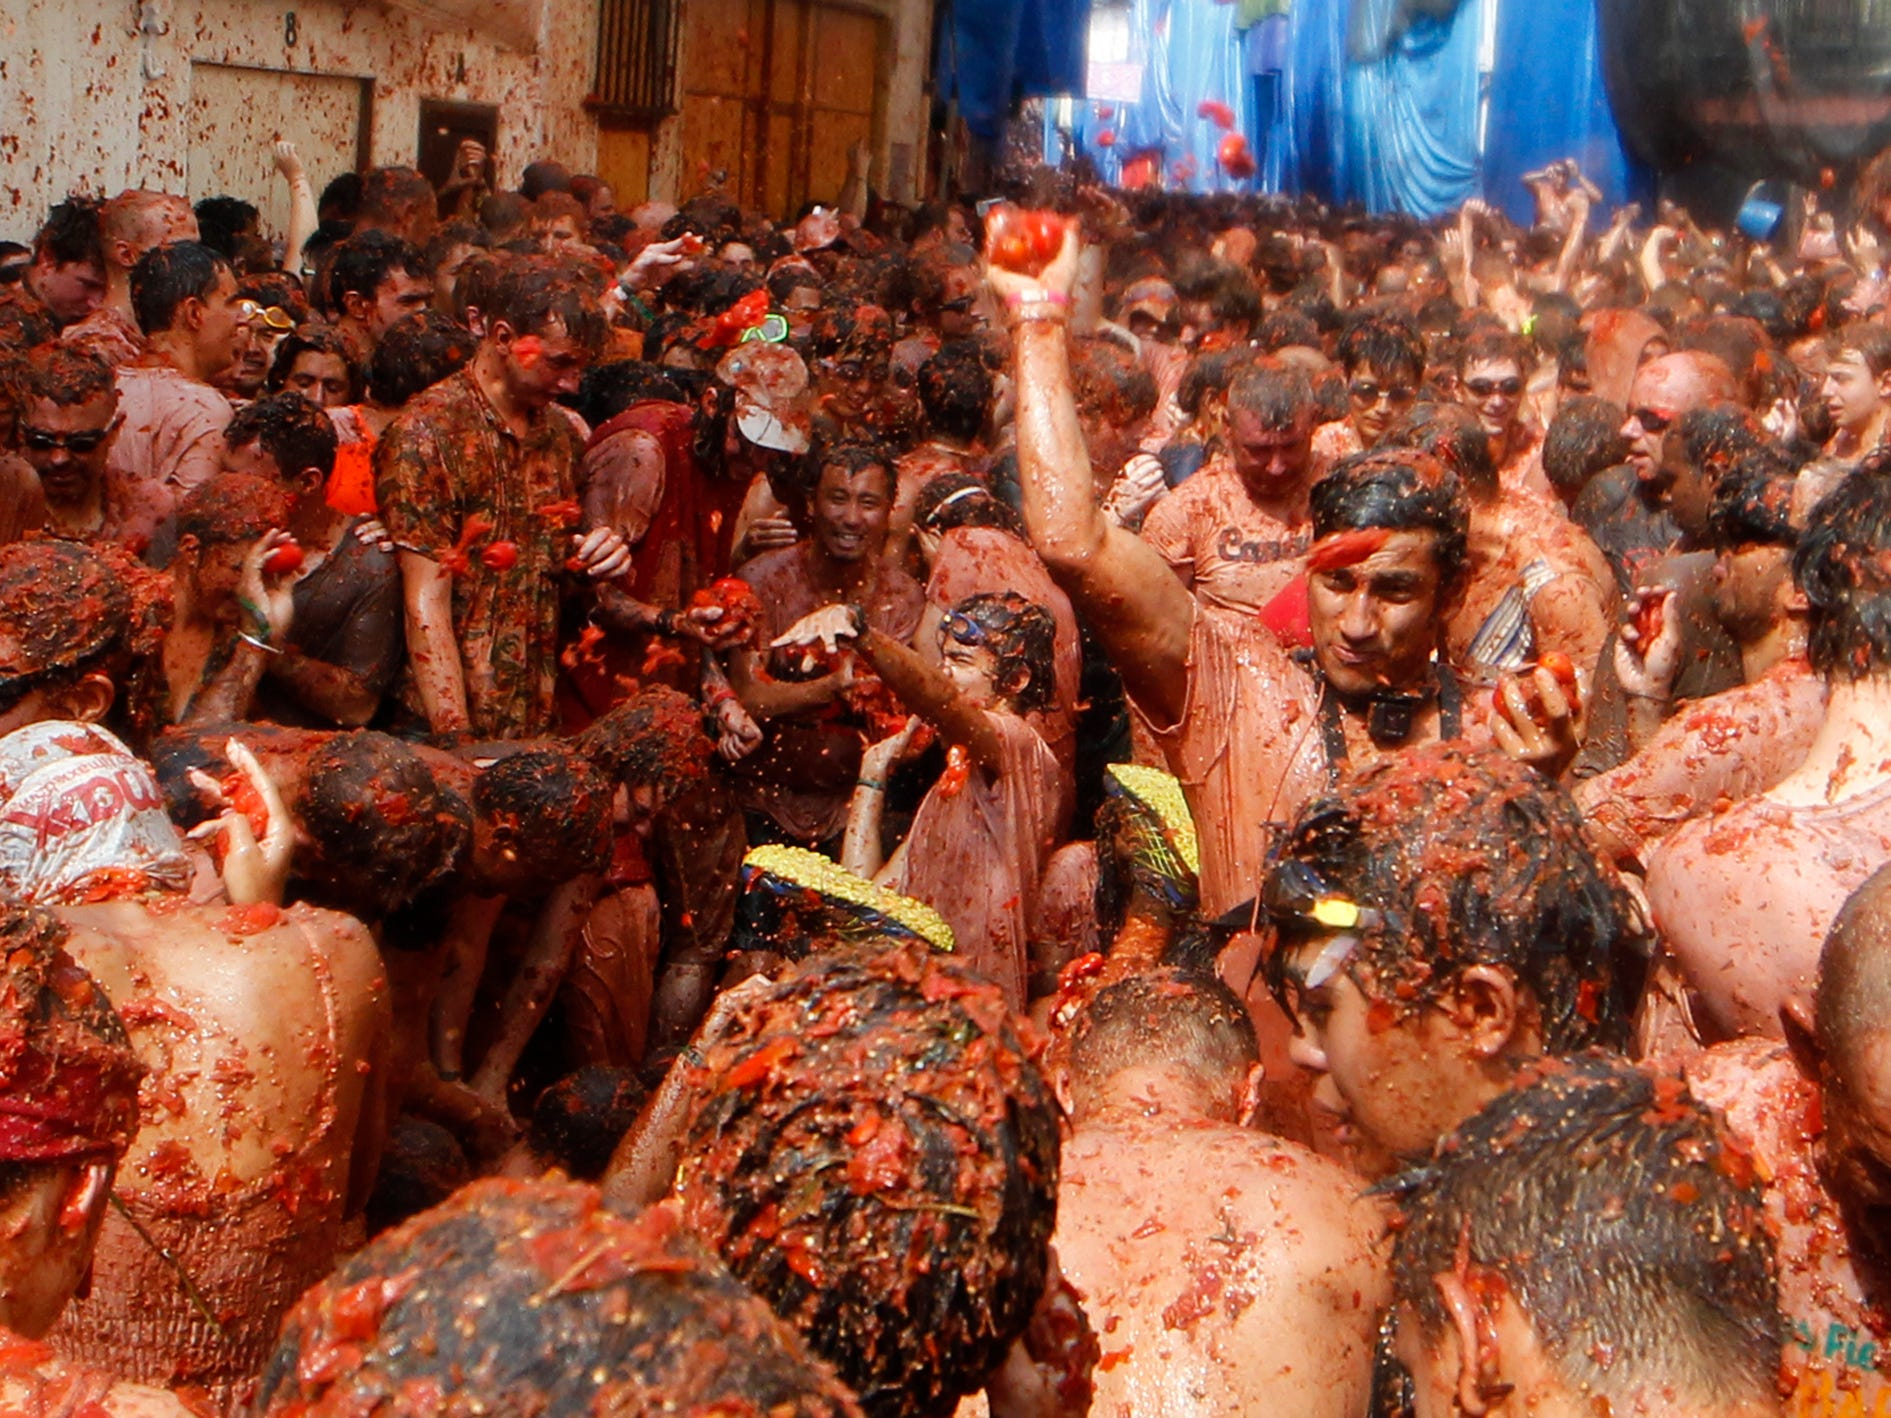 Revelers throw tomatoes at each other, during the annual Tomatina, tomato fight fiesta, in Bunol, Spain,  Aug. 29, 2018.